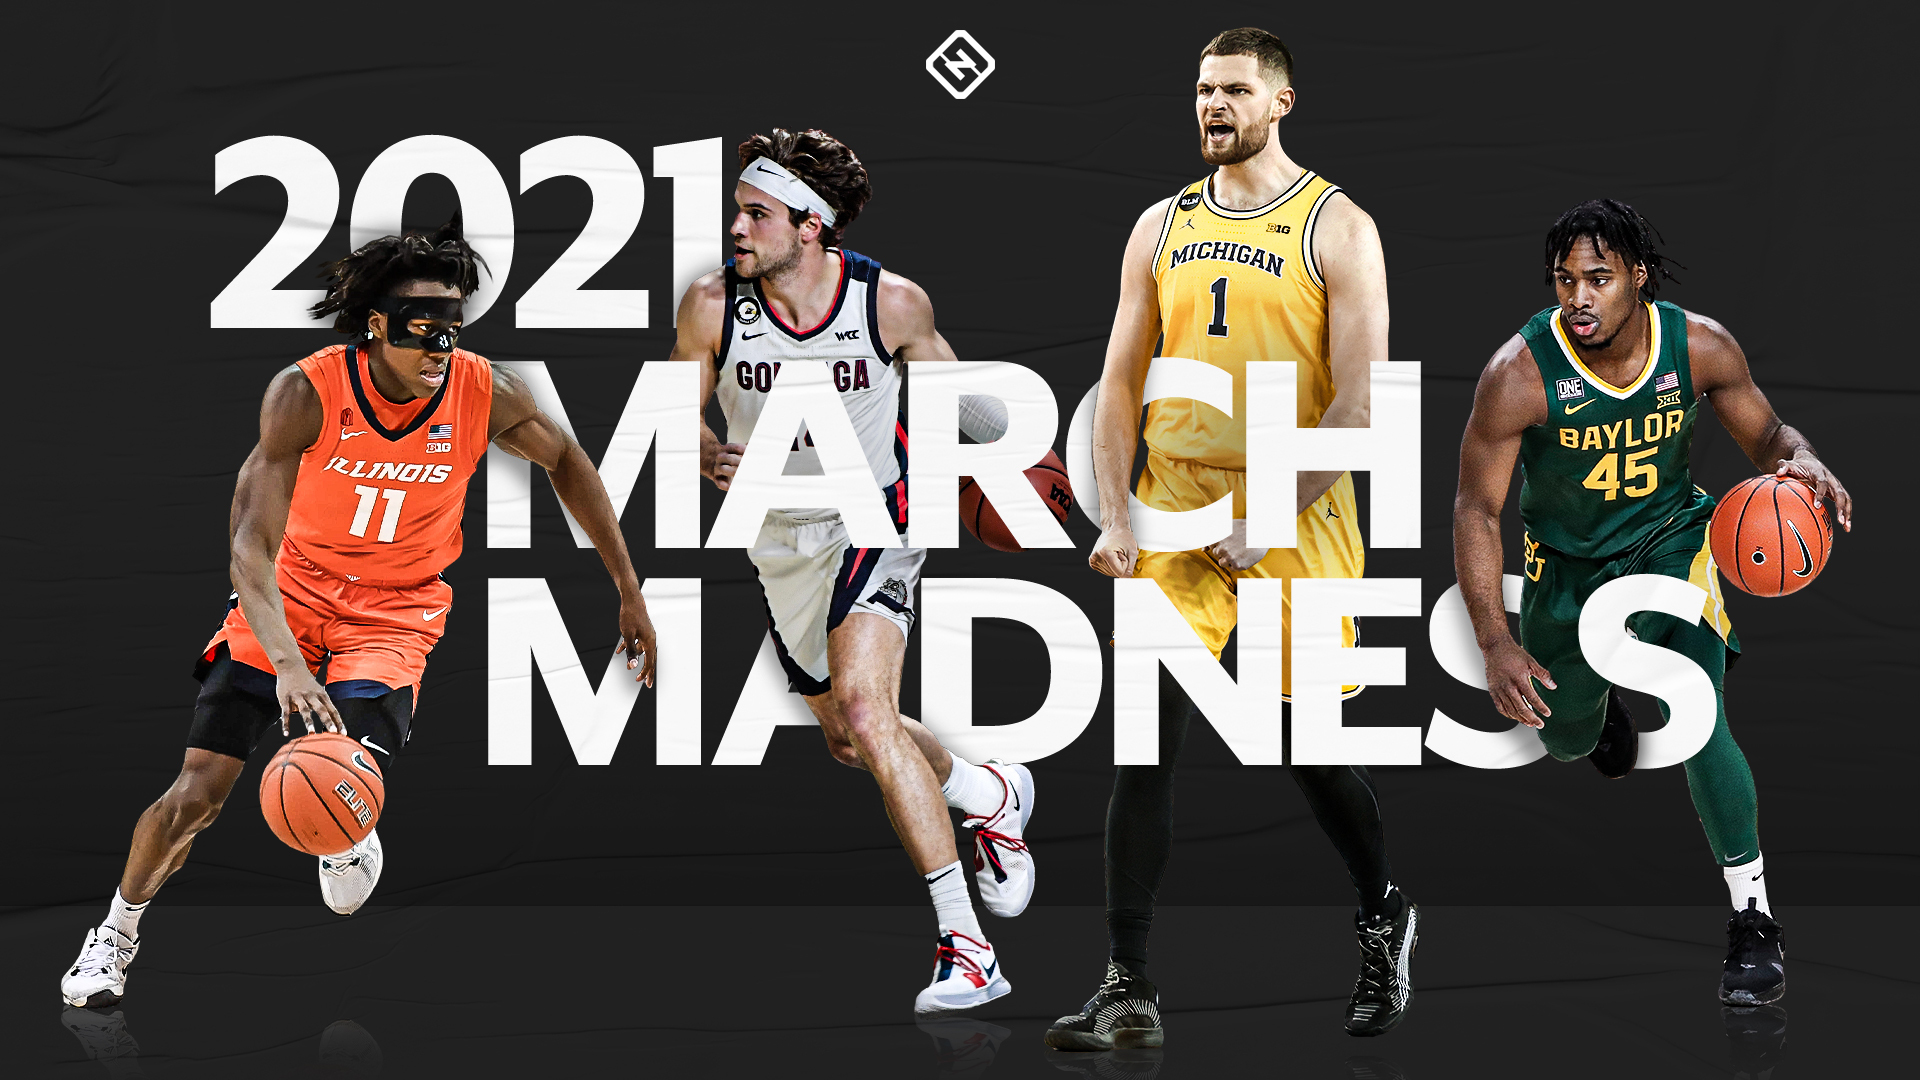 March Madness bracket predictions: Expert picks, upsets, winners, odds & more for 2021 NCAA Tournament